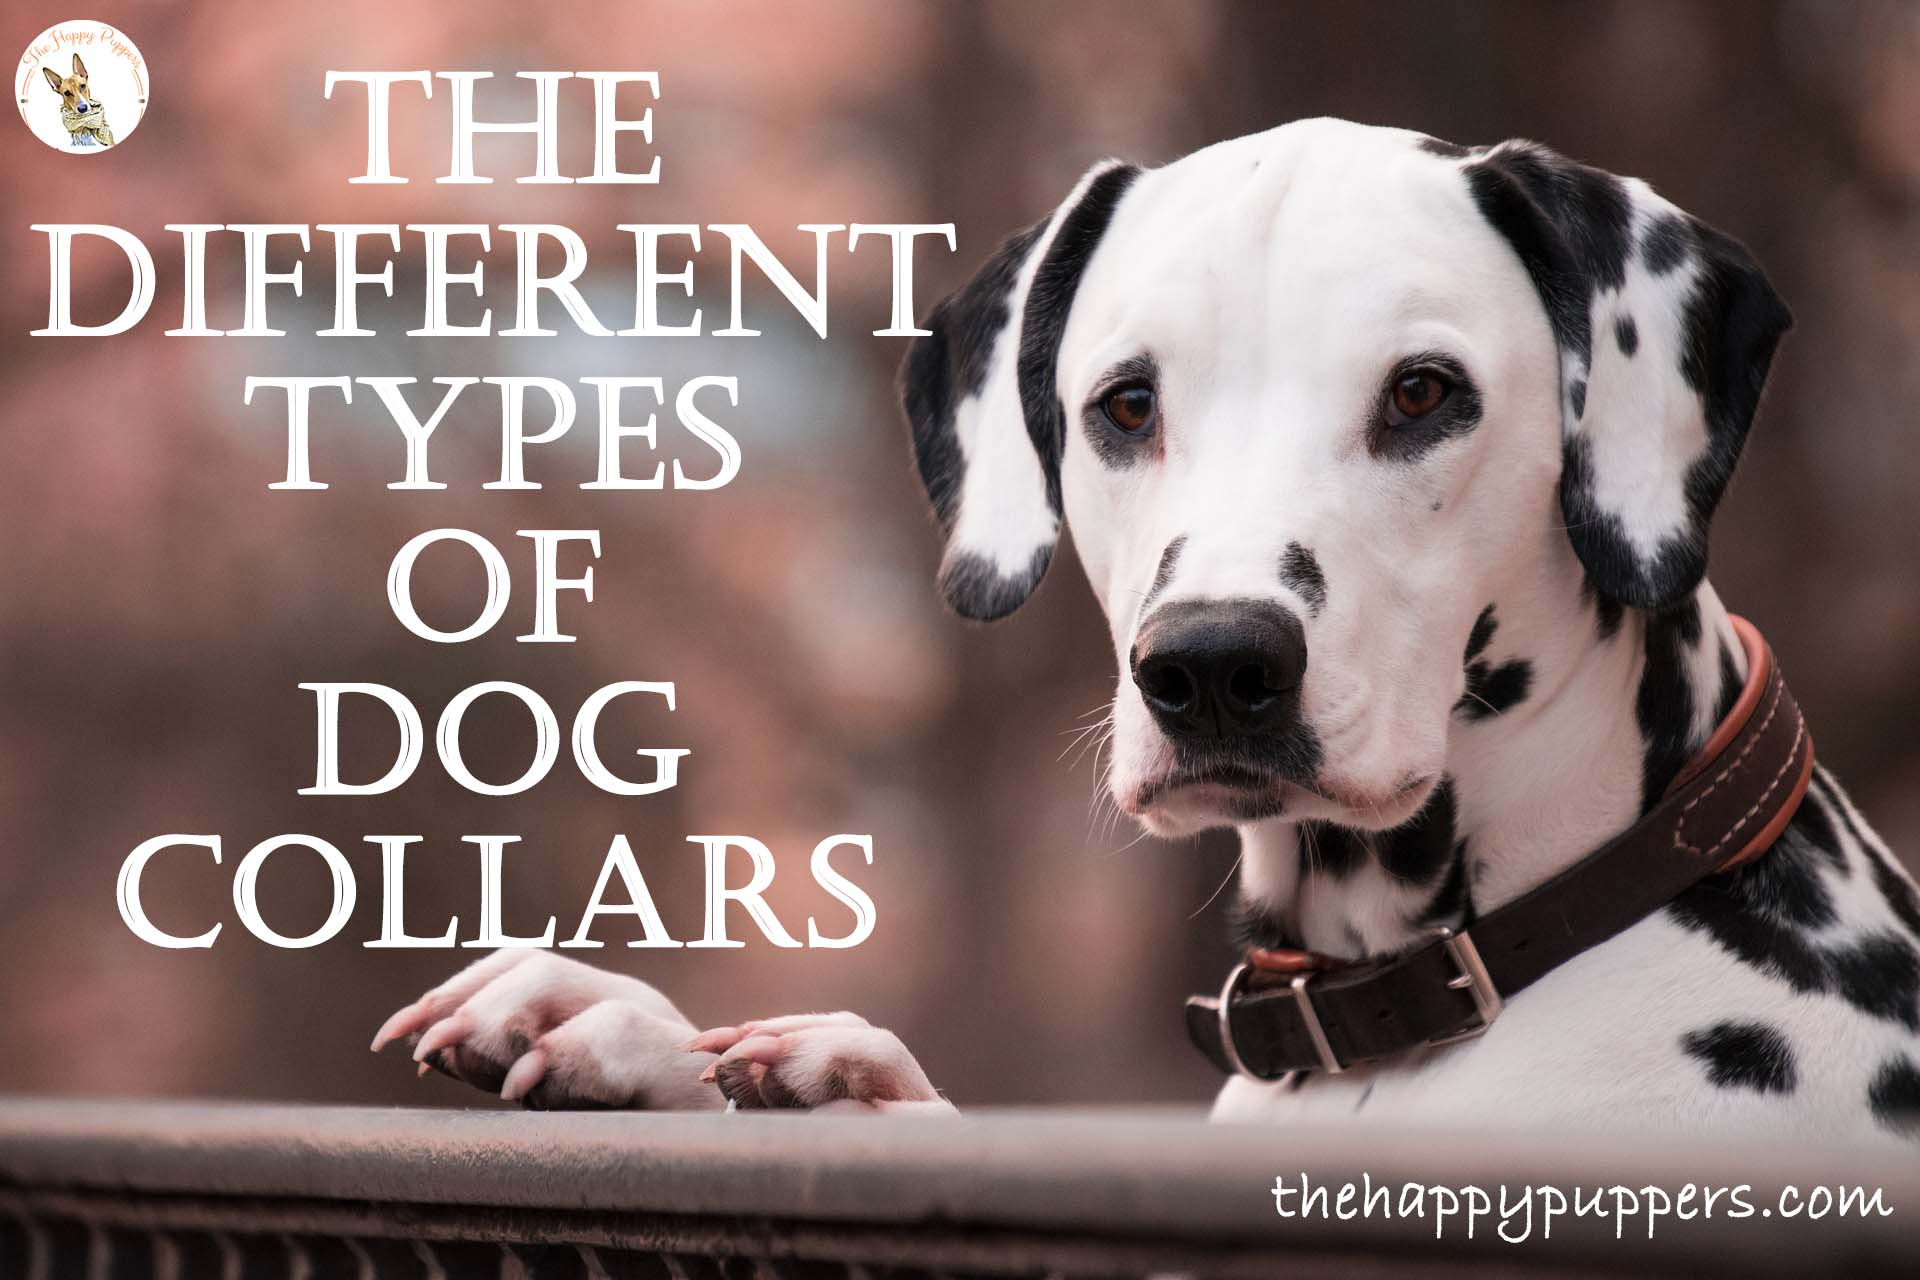 The different types of dog collars